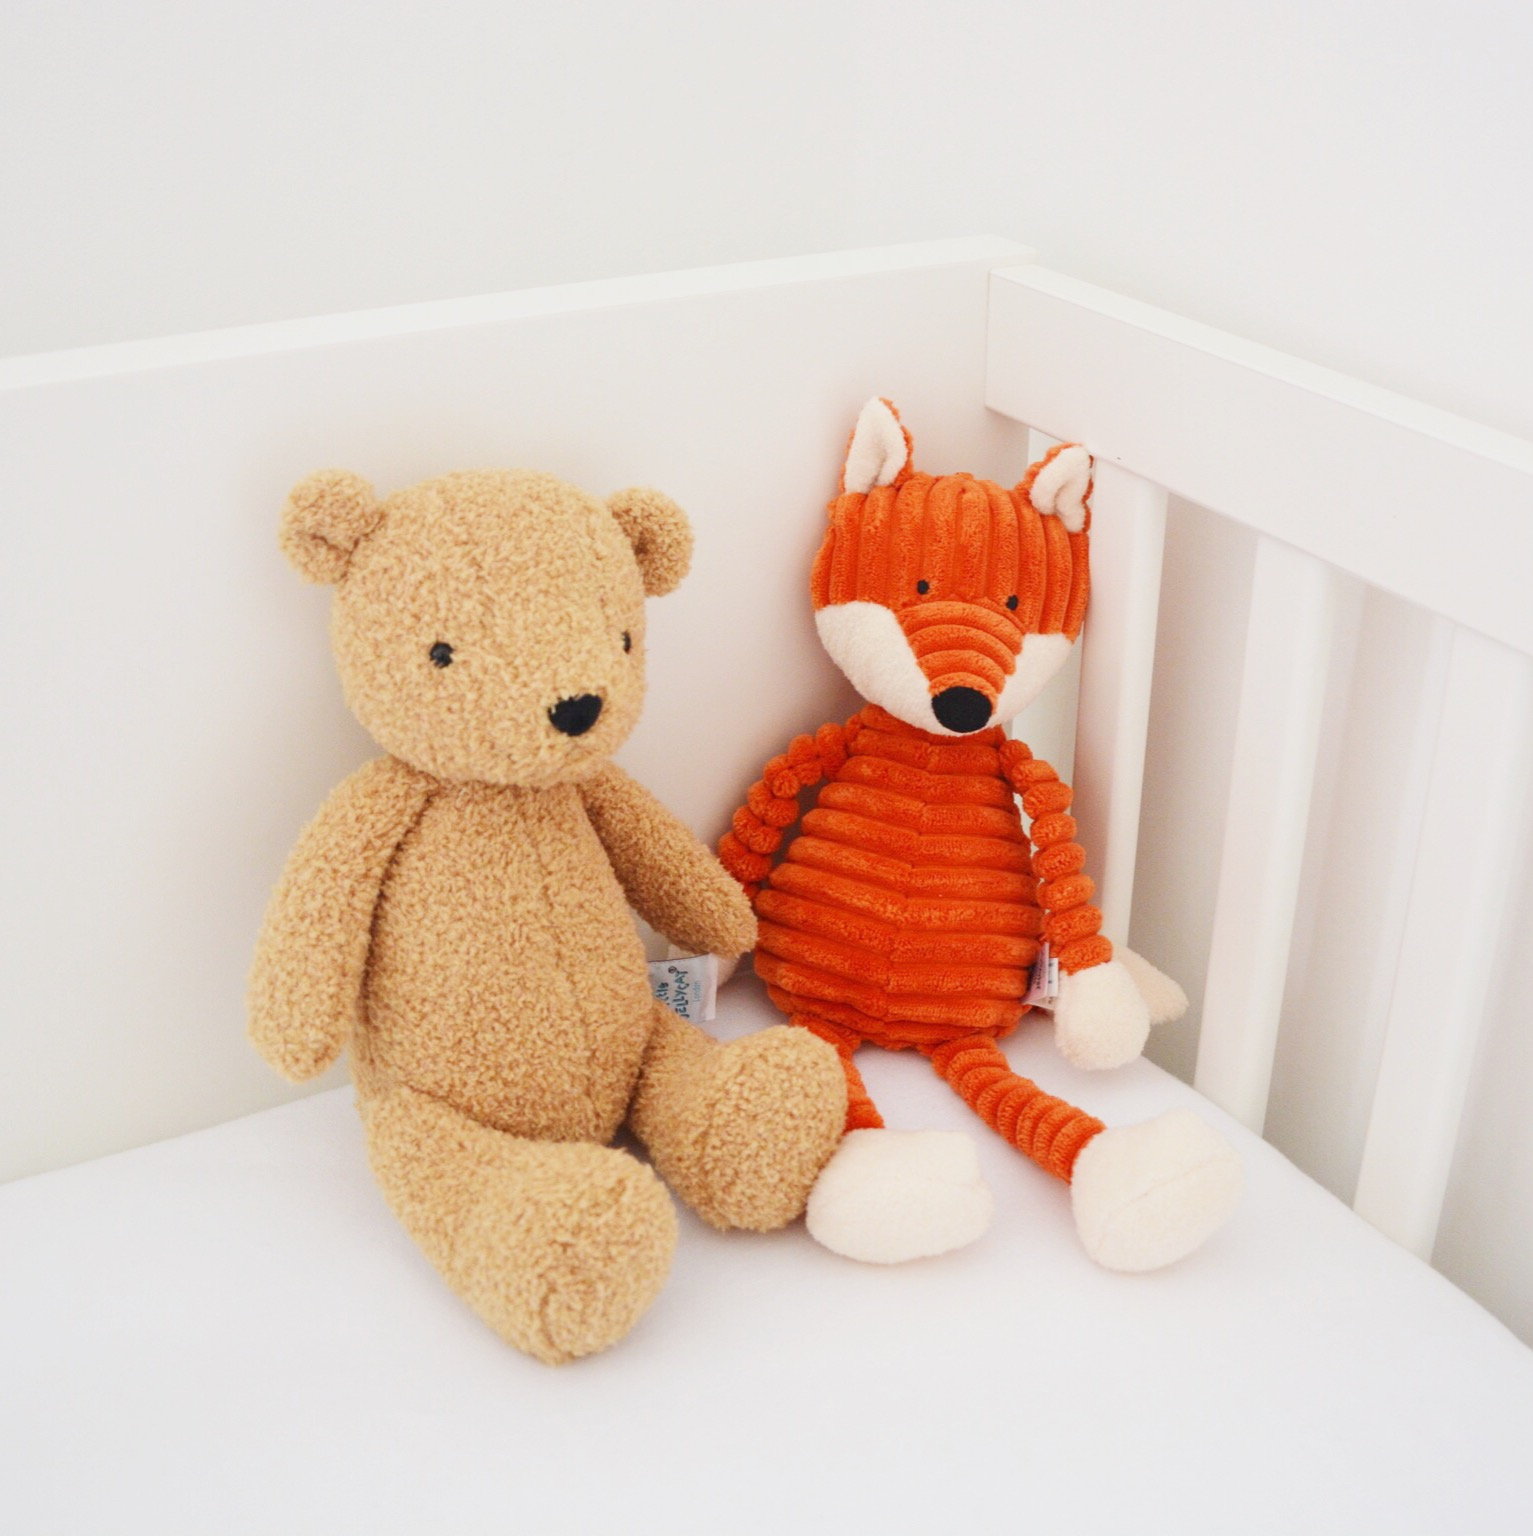 Bear and Mr Fox | Hello! Hooray!